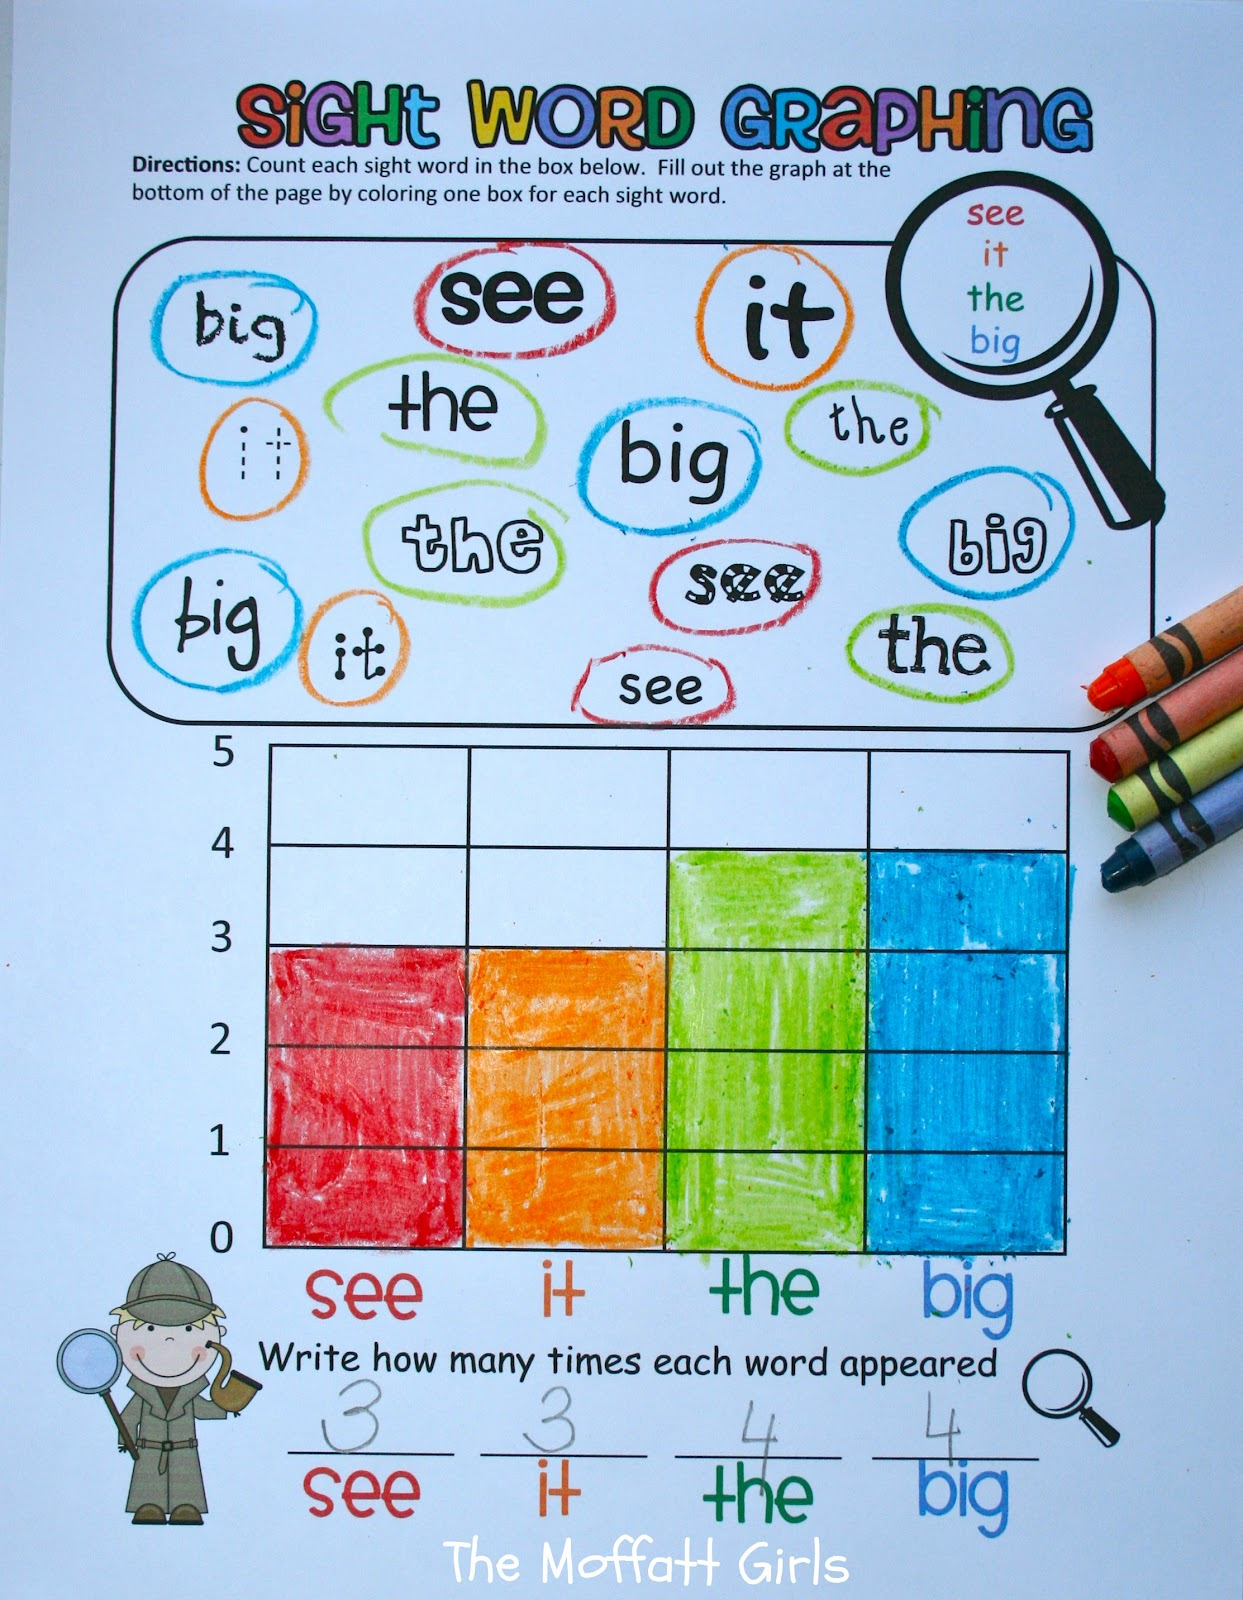 Sight Word Graphing Revised